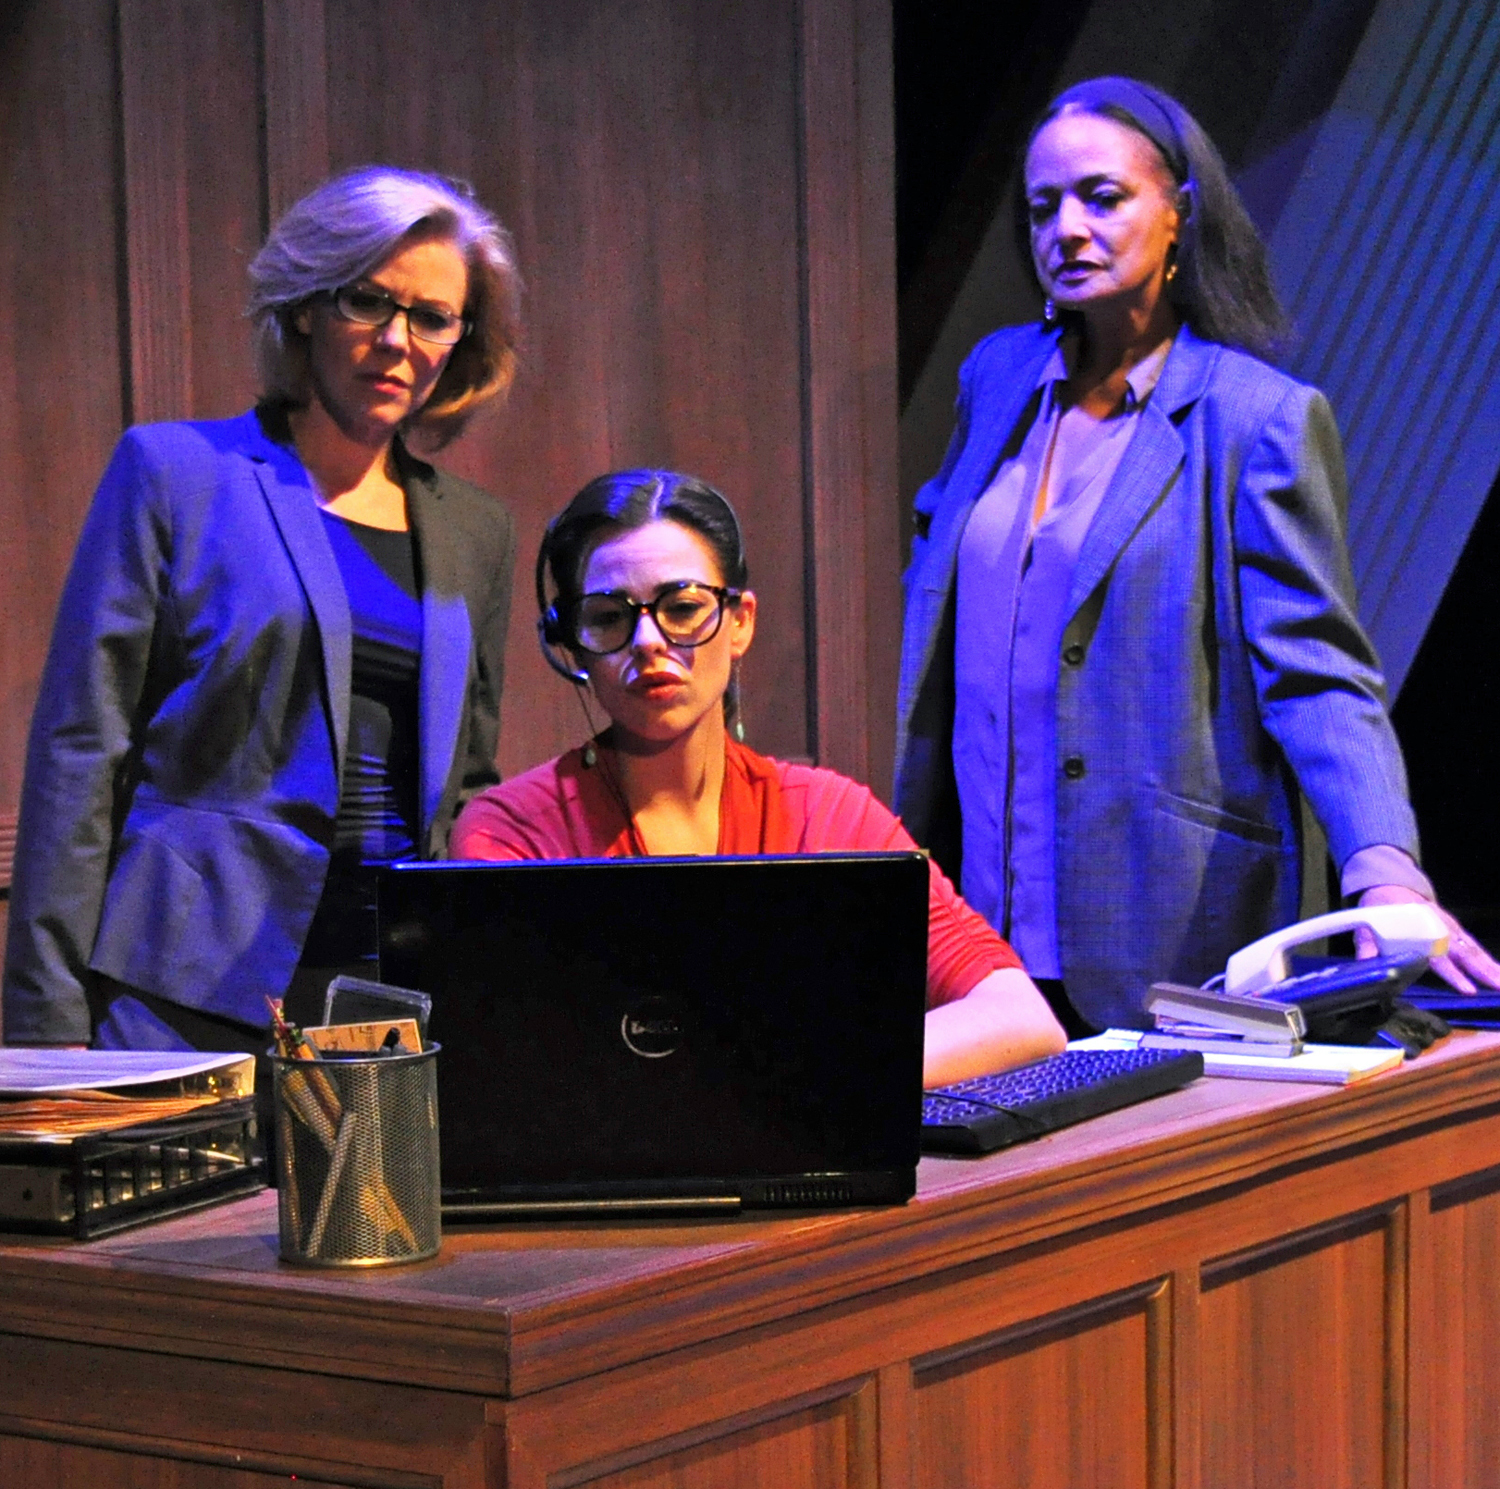 BWW Review: PROJECT DAWN at Unicorn Theatre